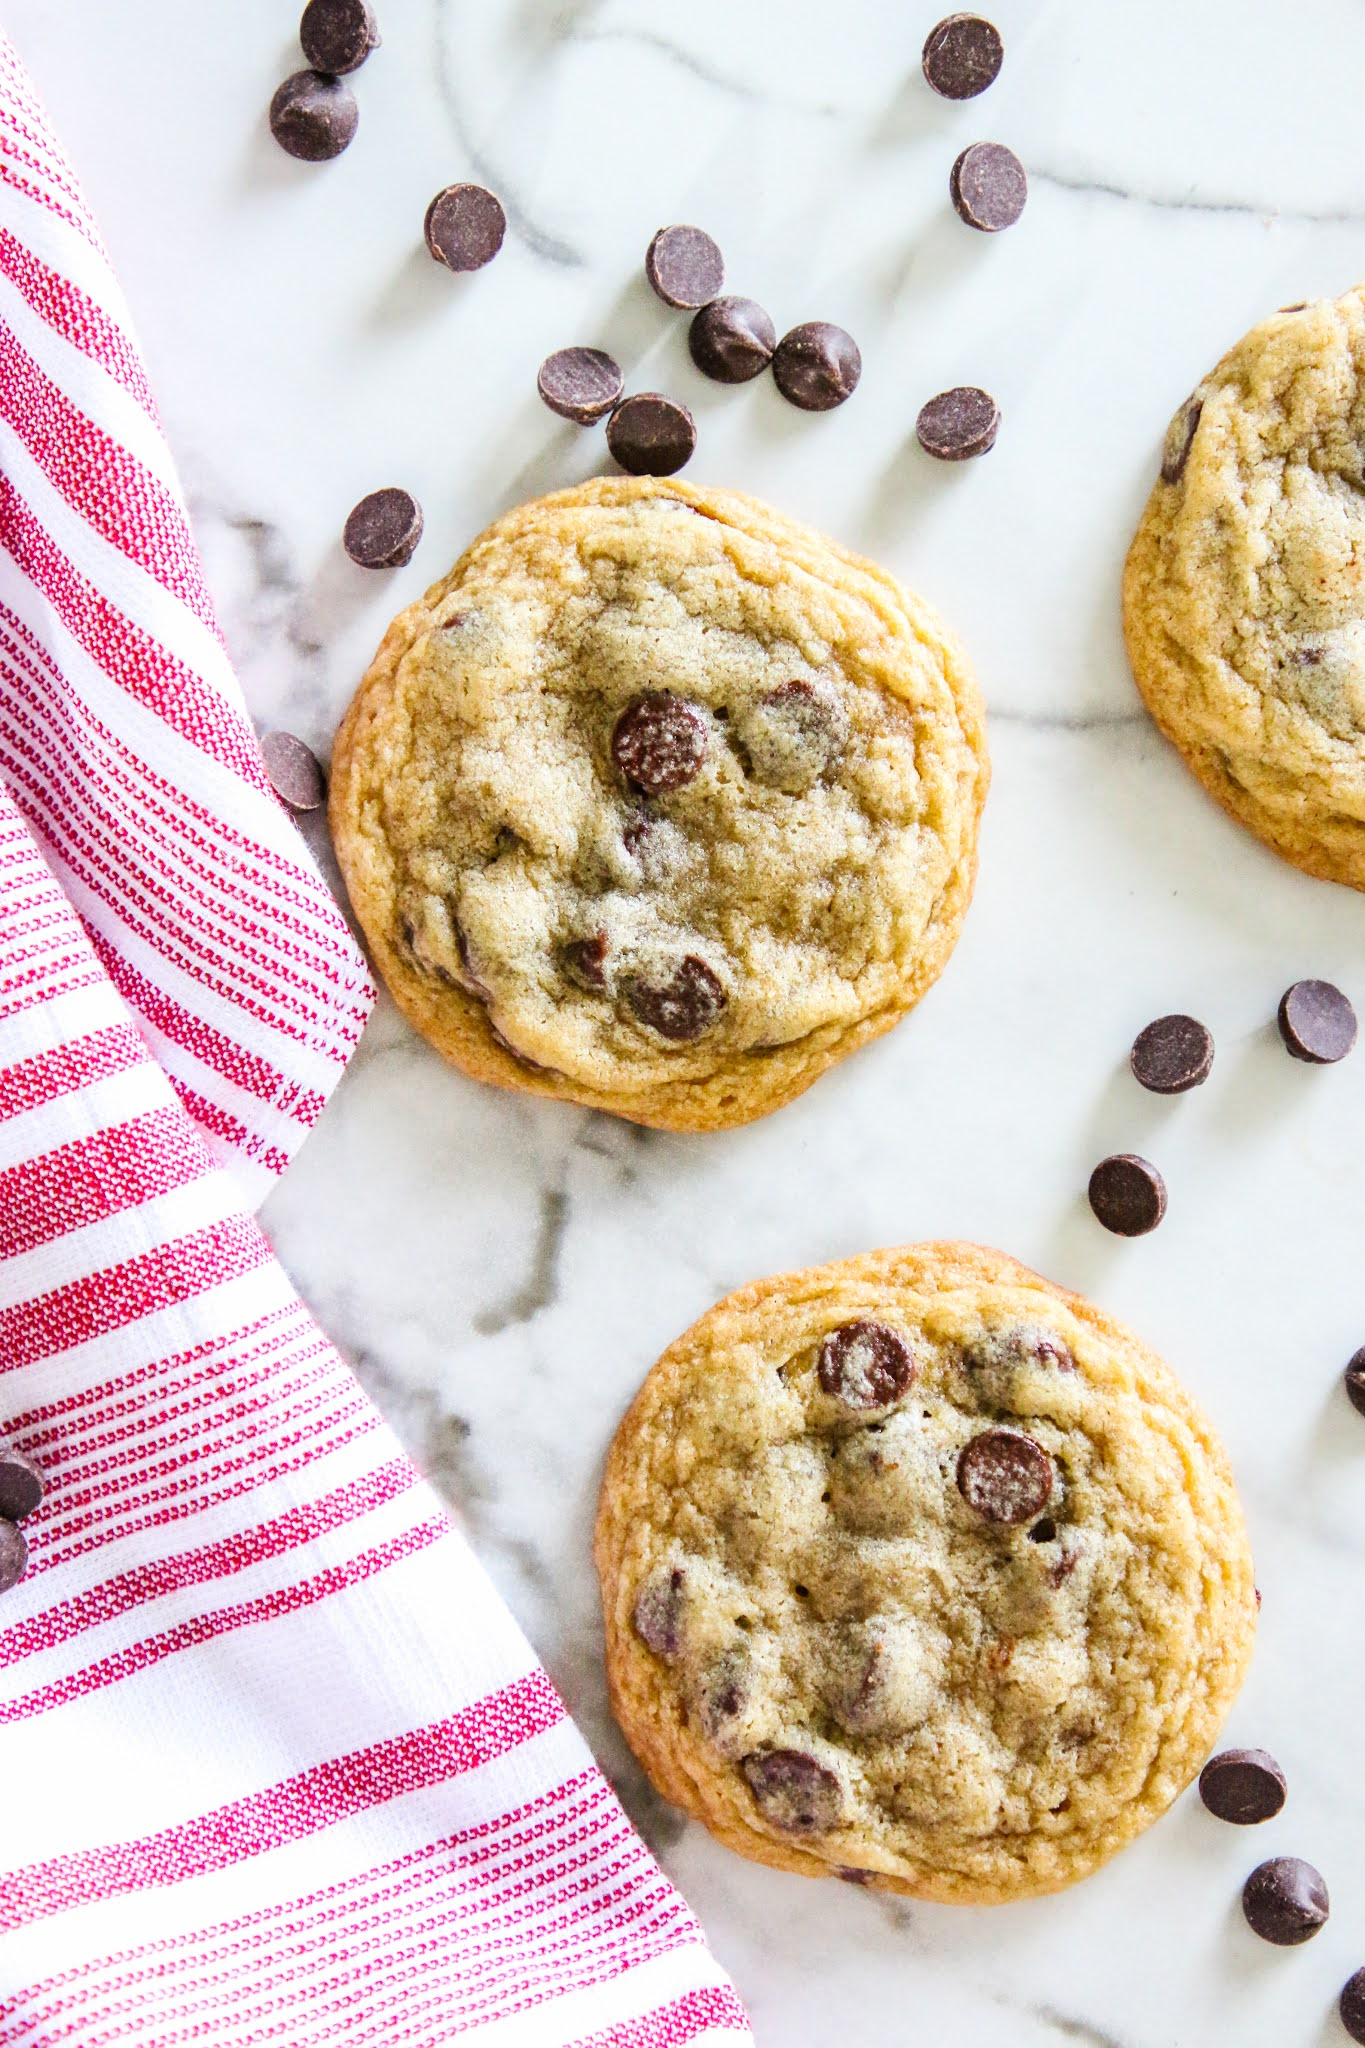 Three chocolate chip cookies on a marble table with scattered chocolate chips and a red towel